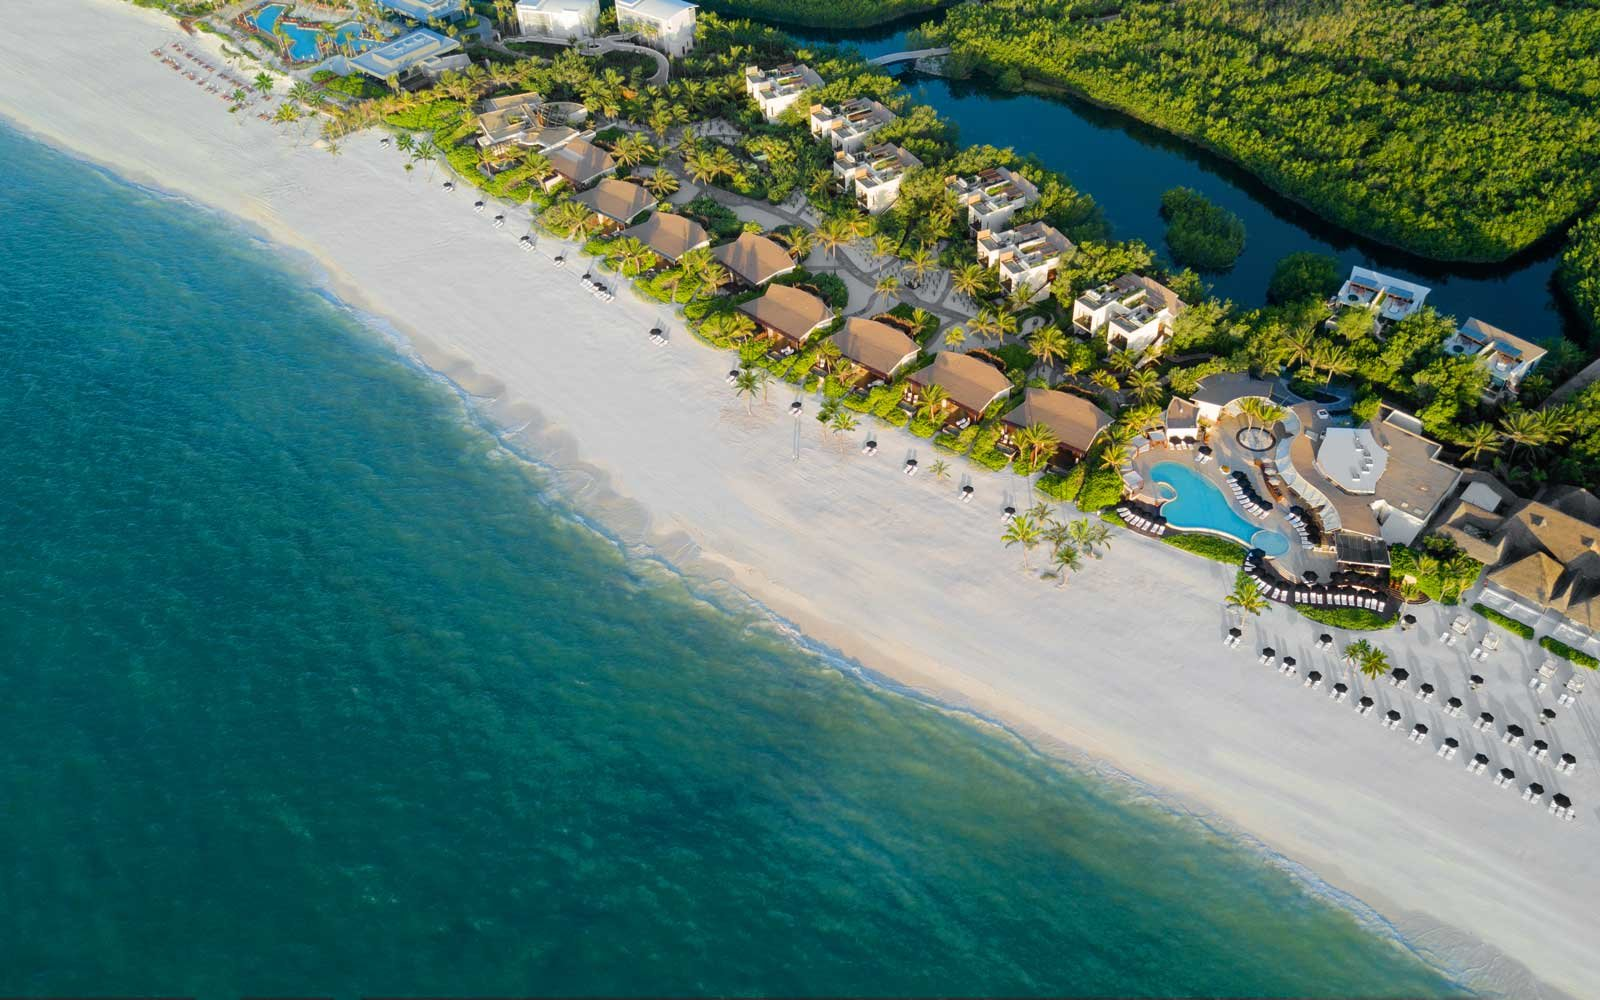 Aerial vie of the Rosewood Mayakoba, in Mexico